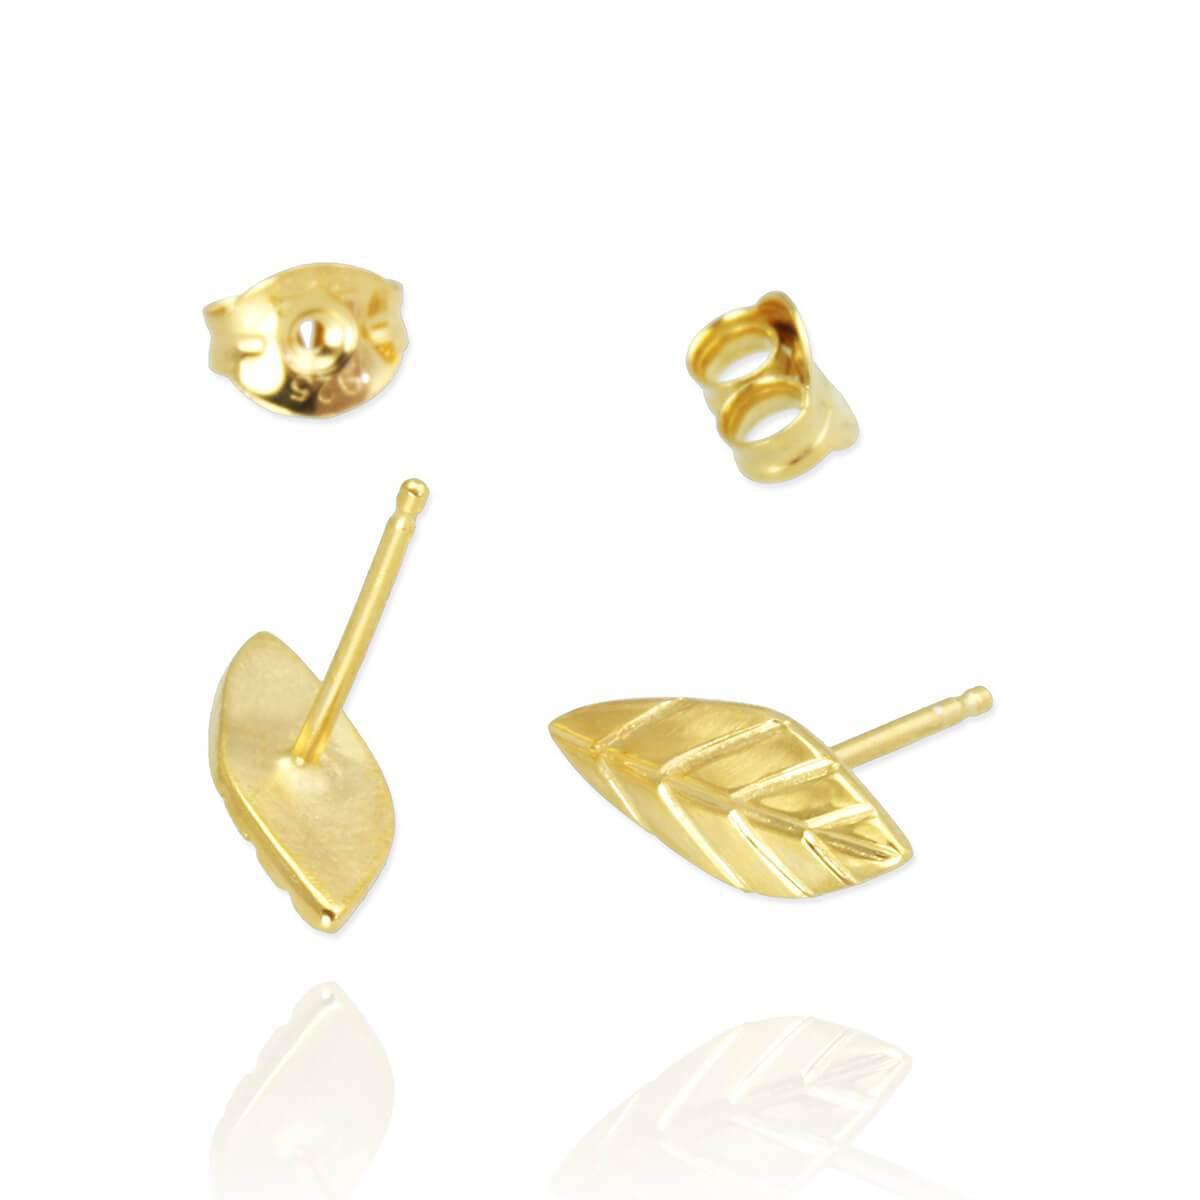 Jana Reinhardt Yellow Gold Plated Leaf Stud Earrings msMPe7Ohh4